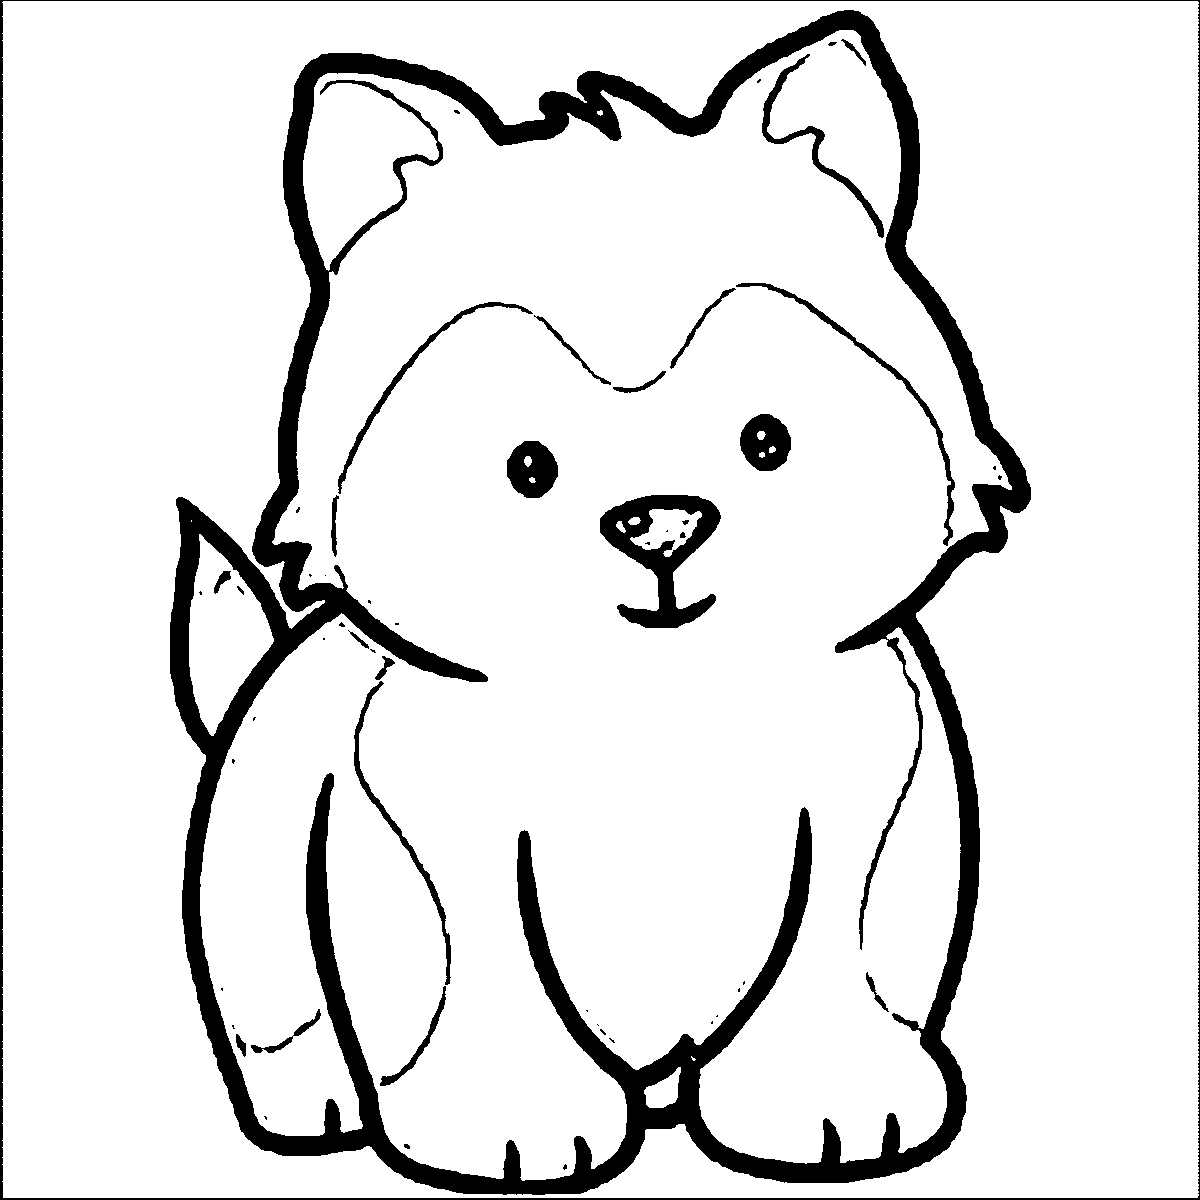 kawaii dog coloring pages free printable dogs and puppies coloring pages for kids kawaii pages dog coloring